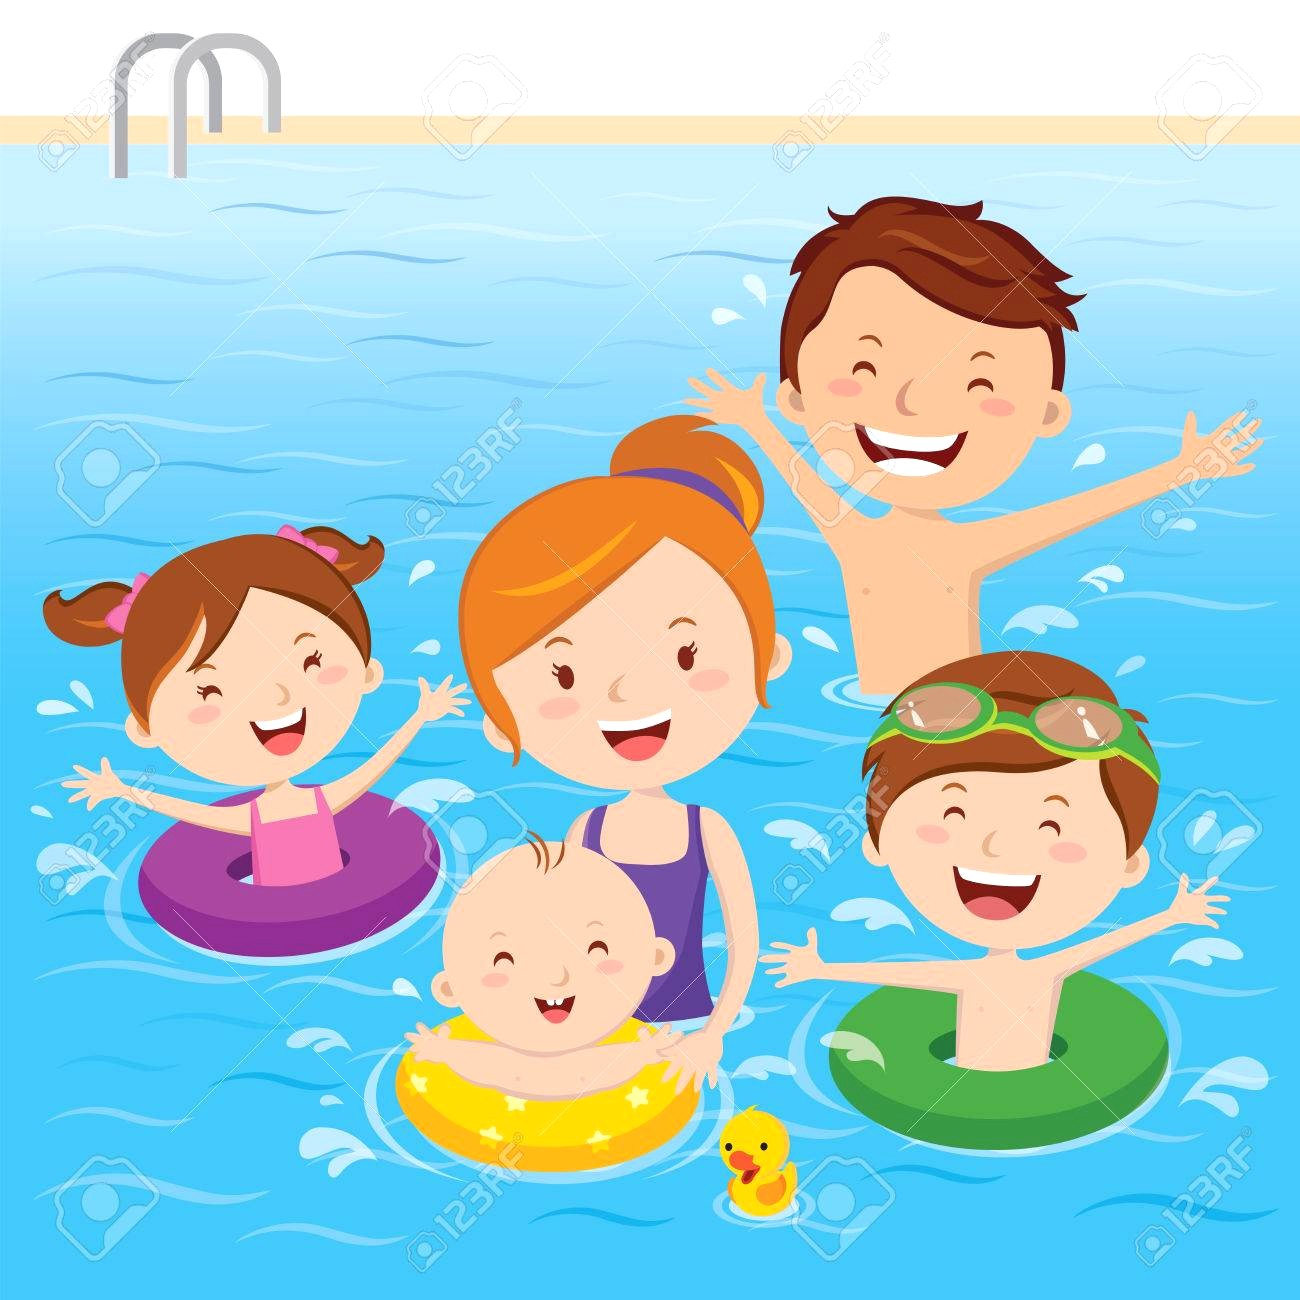 People swimming clipart 2 » Clipart Station